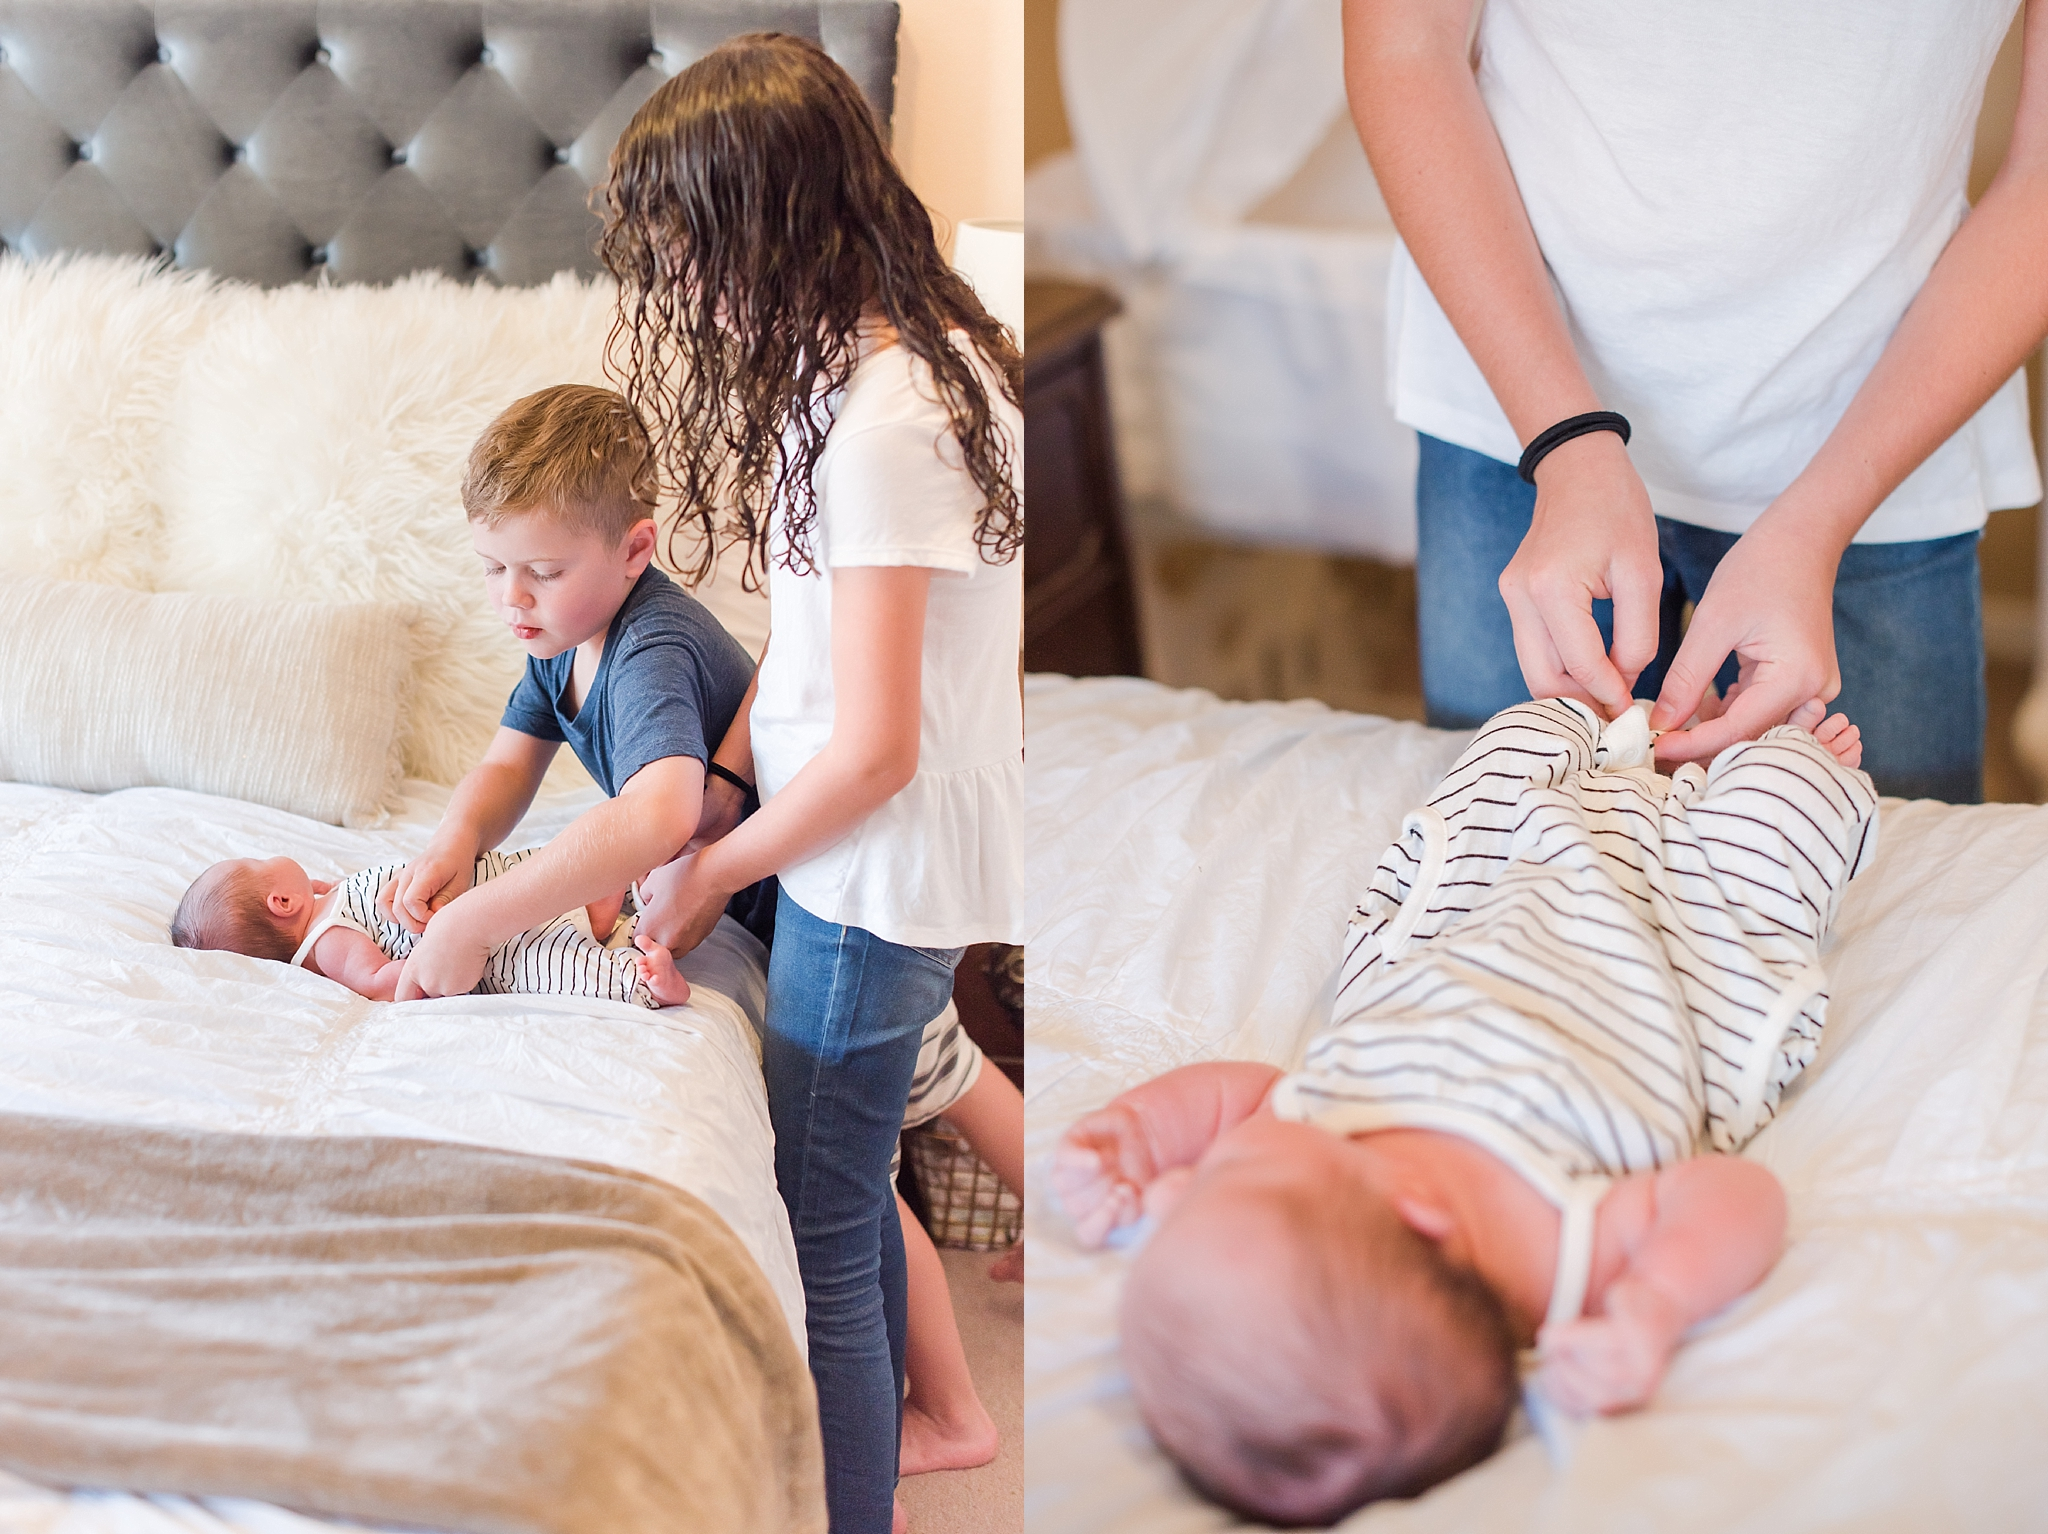 Kylee Palmer home lifestyle and newborn session with newborn and kids. Family photos by Jade Min Photography.